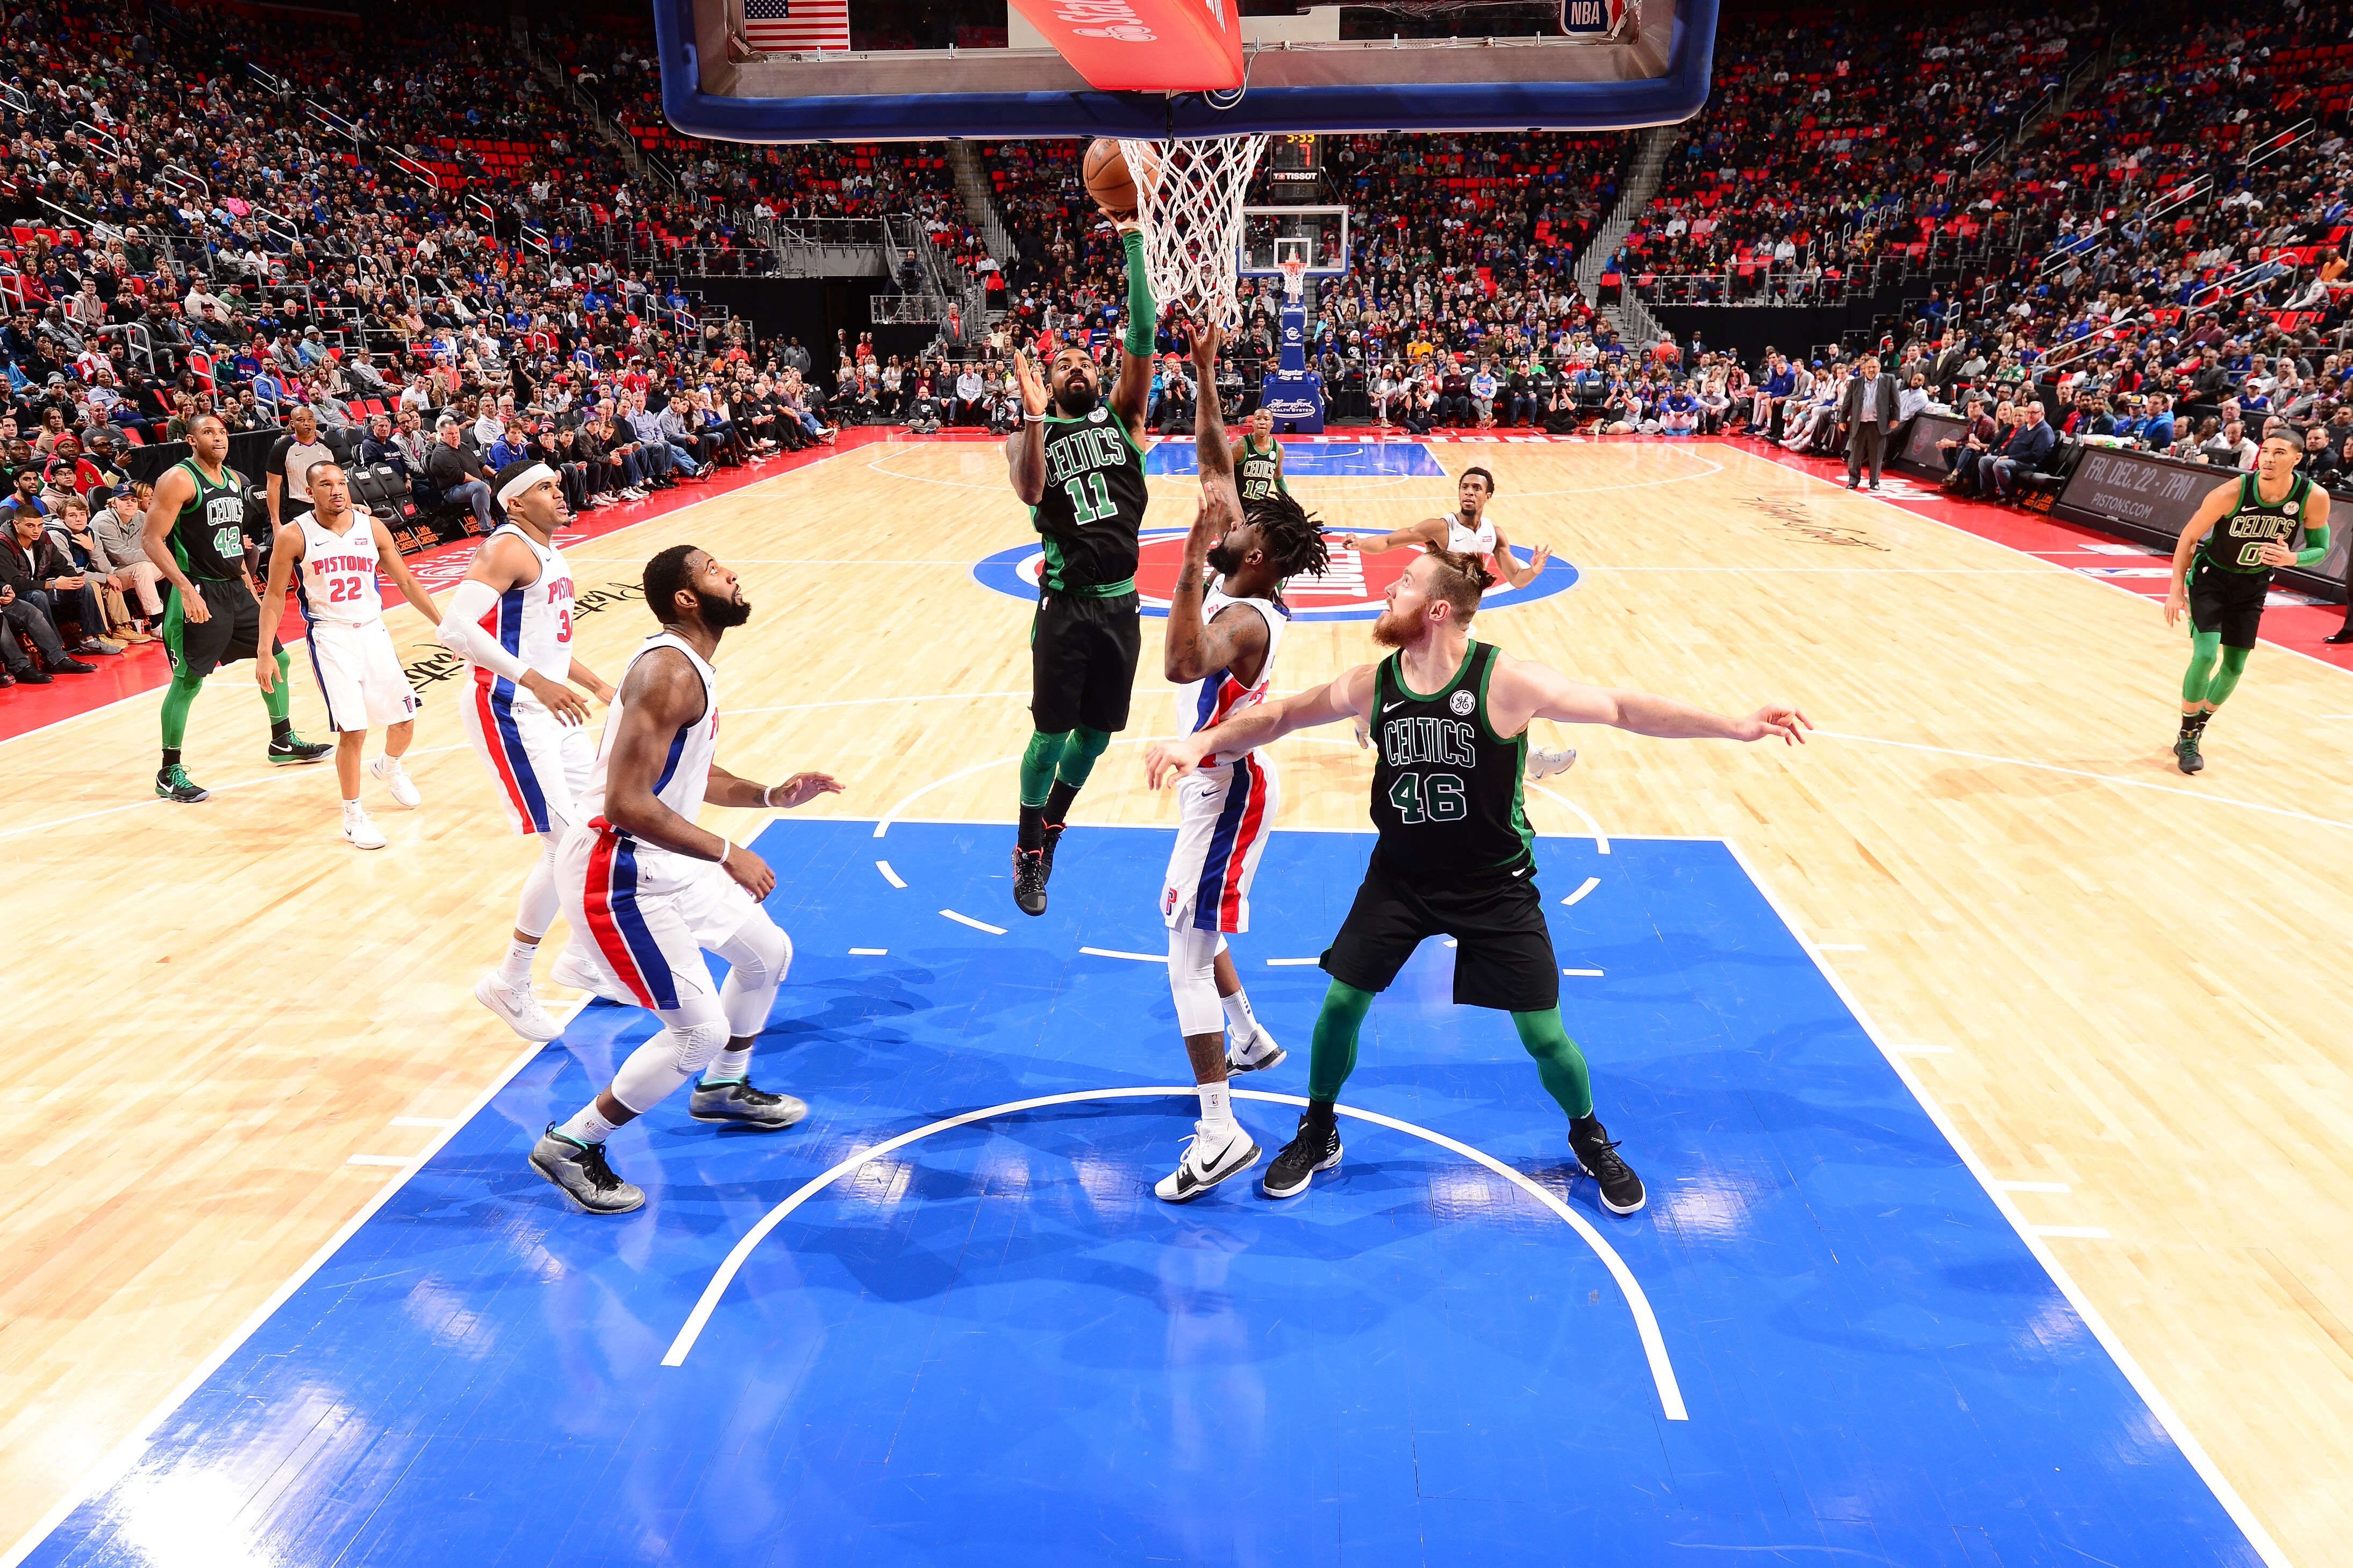 889831538-boston-celtics-v-detroit-pistons.jpg